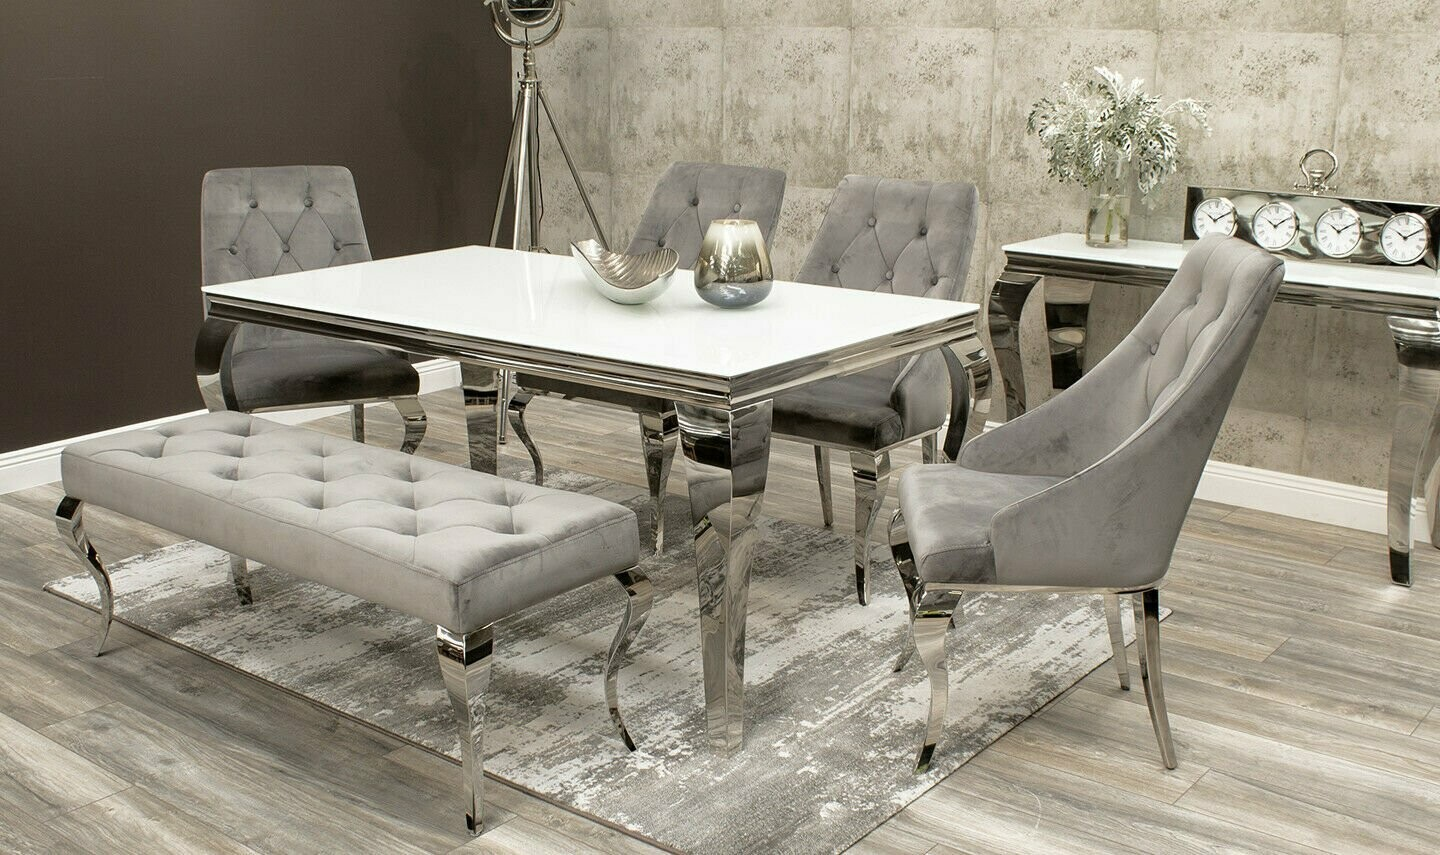 Laveda White Glass Dining Table + 7 Cassie Velvet Chairs + Bench